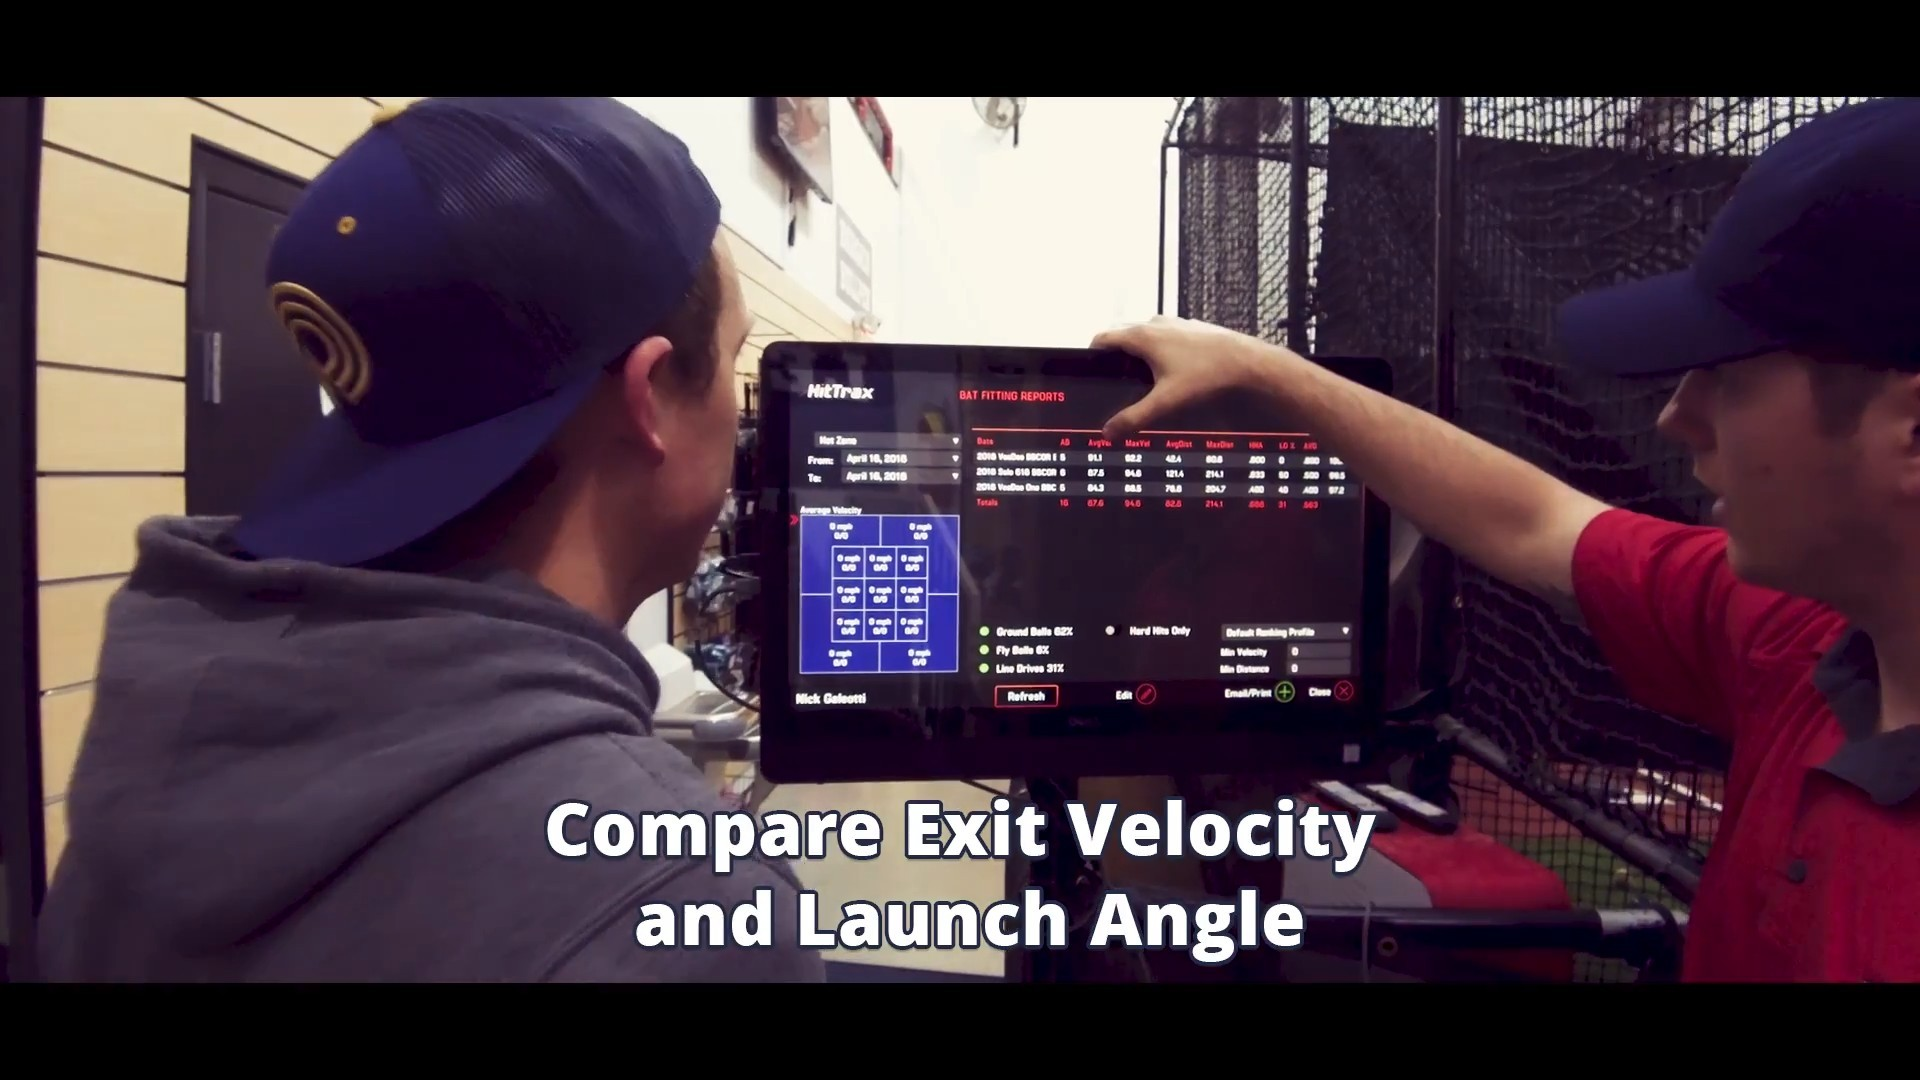 Compare Exit Velocity and Launch Angle